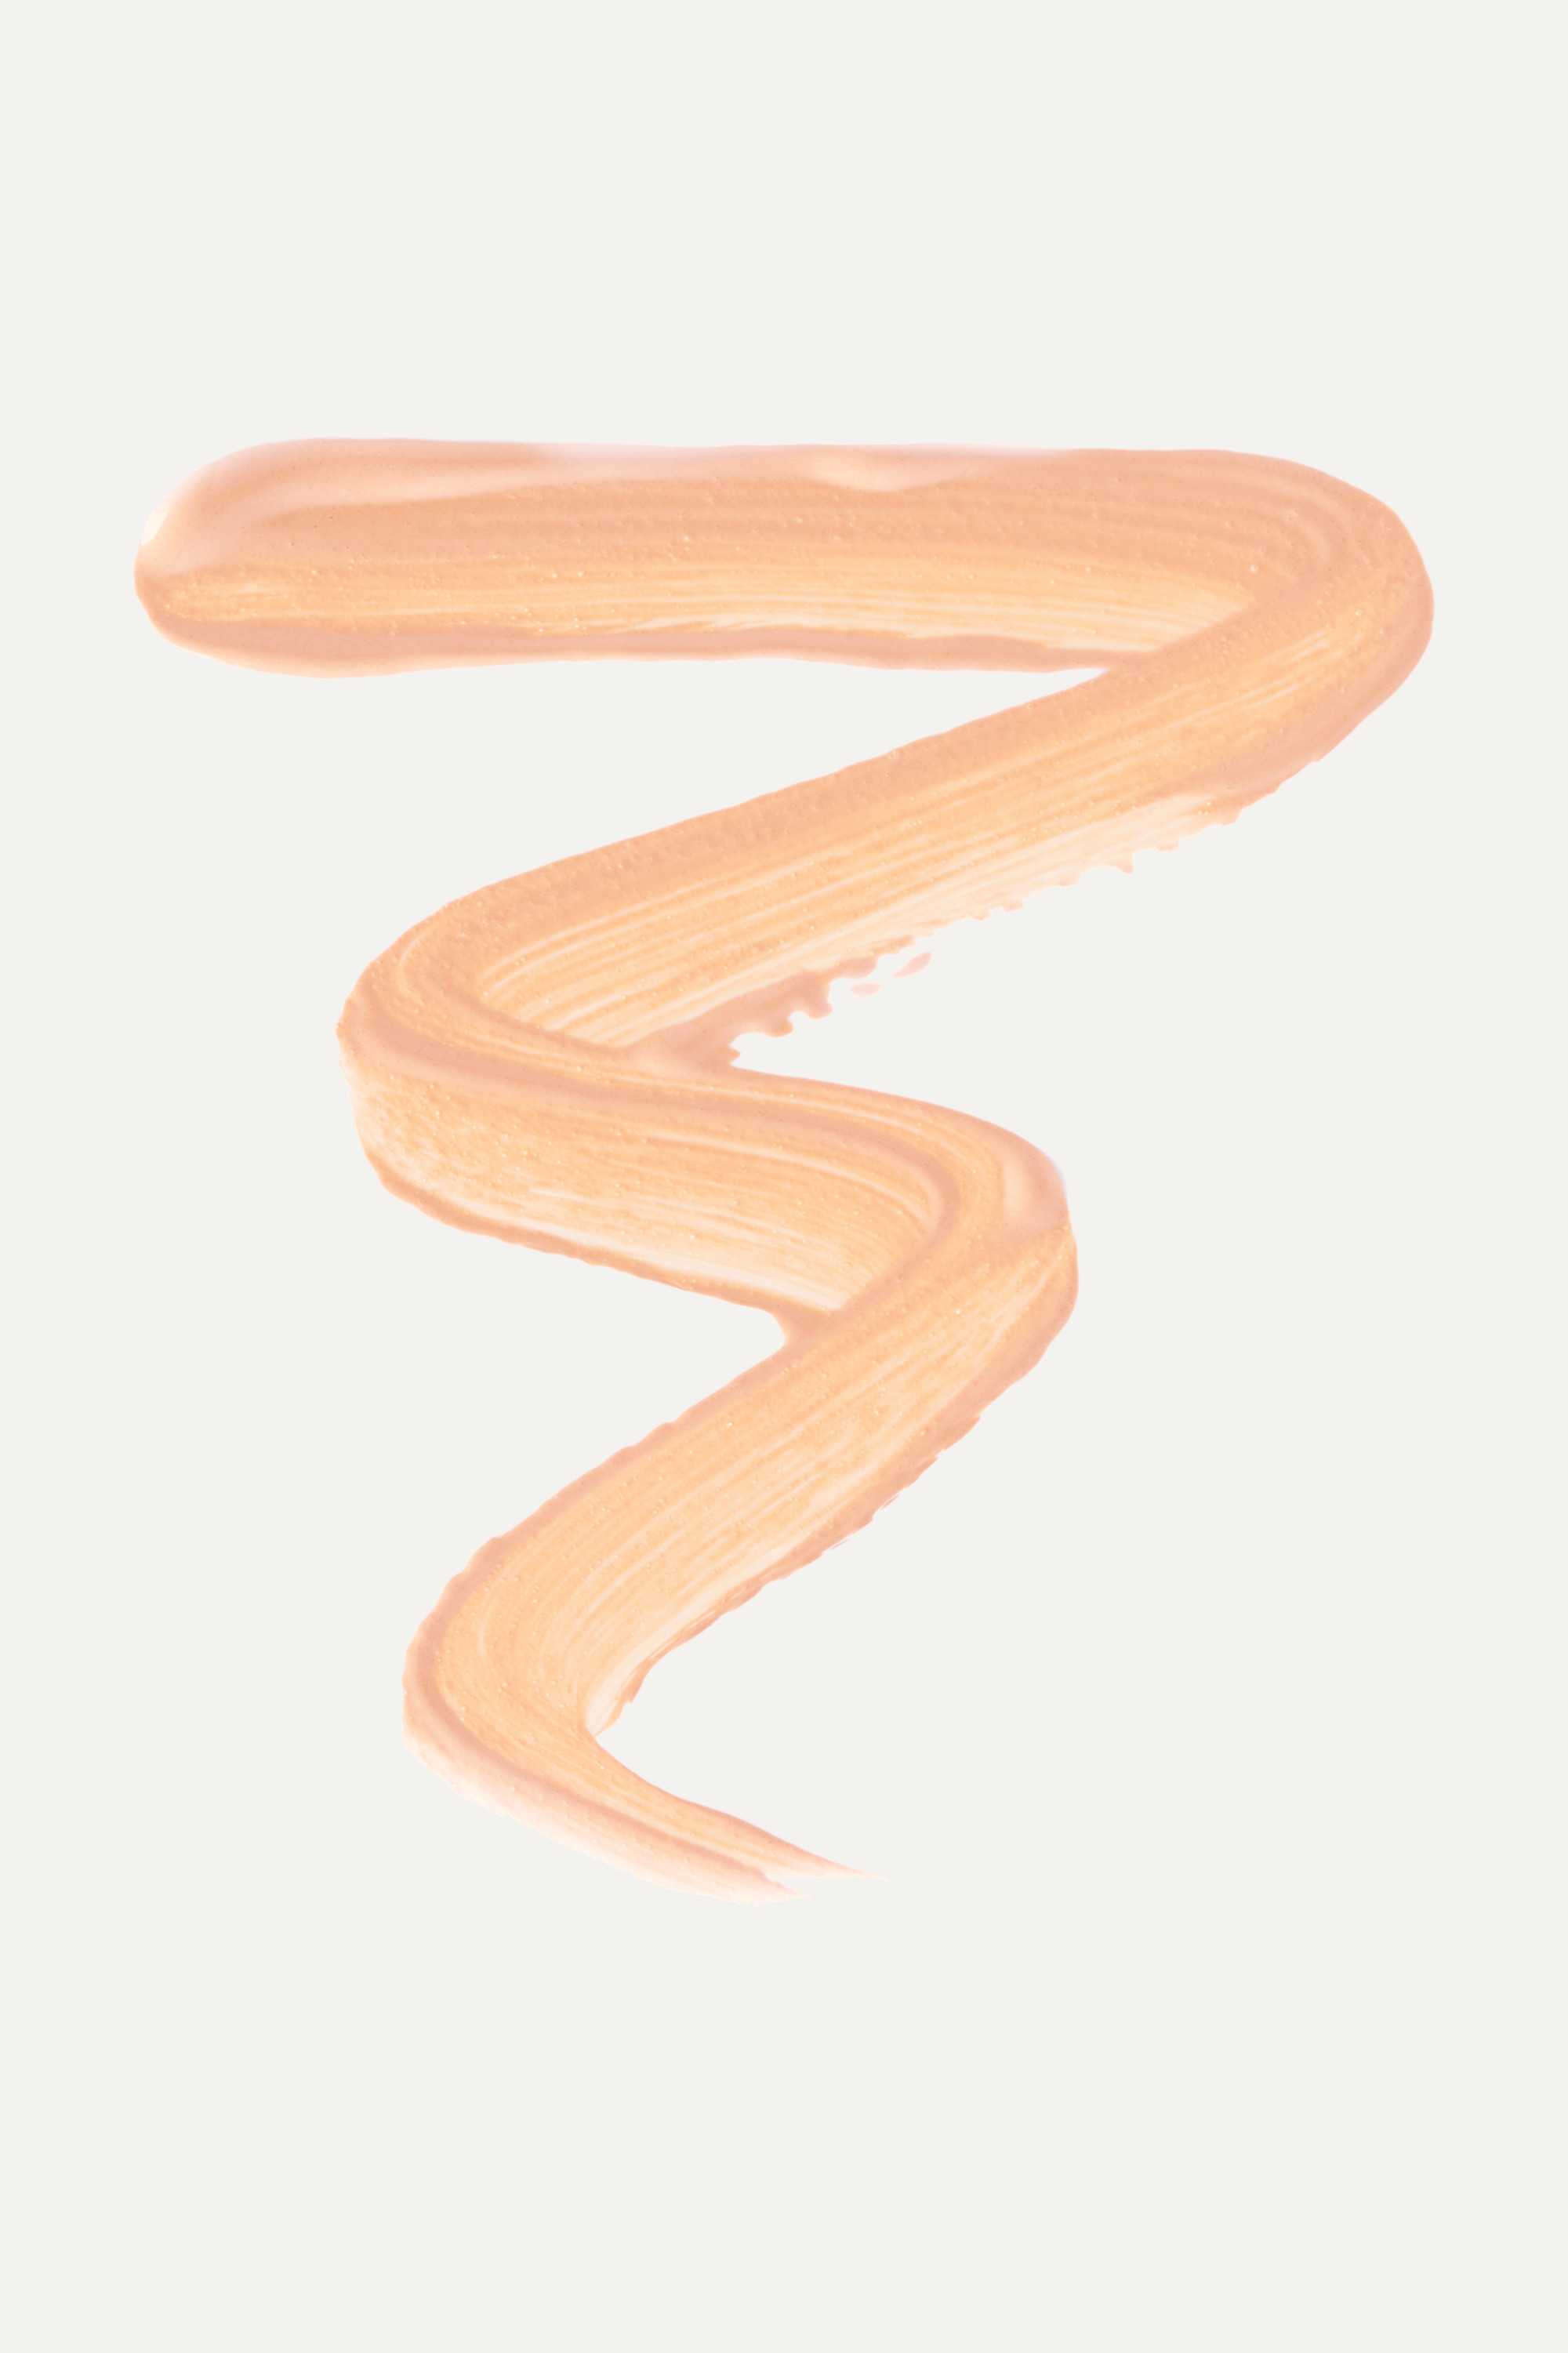 CHARLOTTE TILBURY Mini Miracle Eye Wand - Shade 1, 3ml